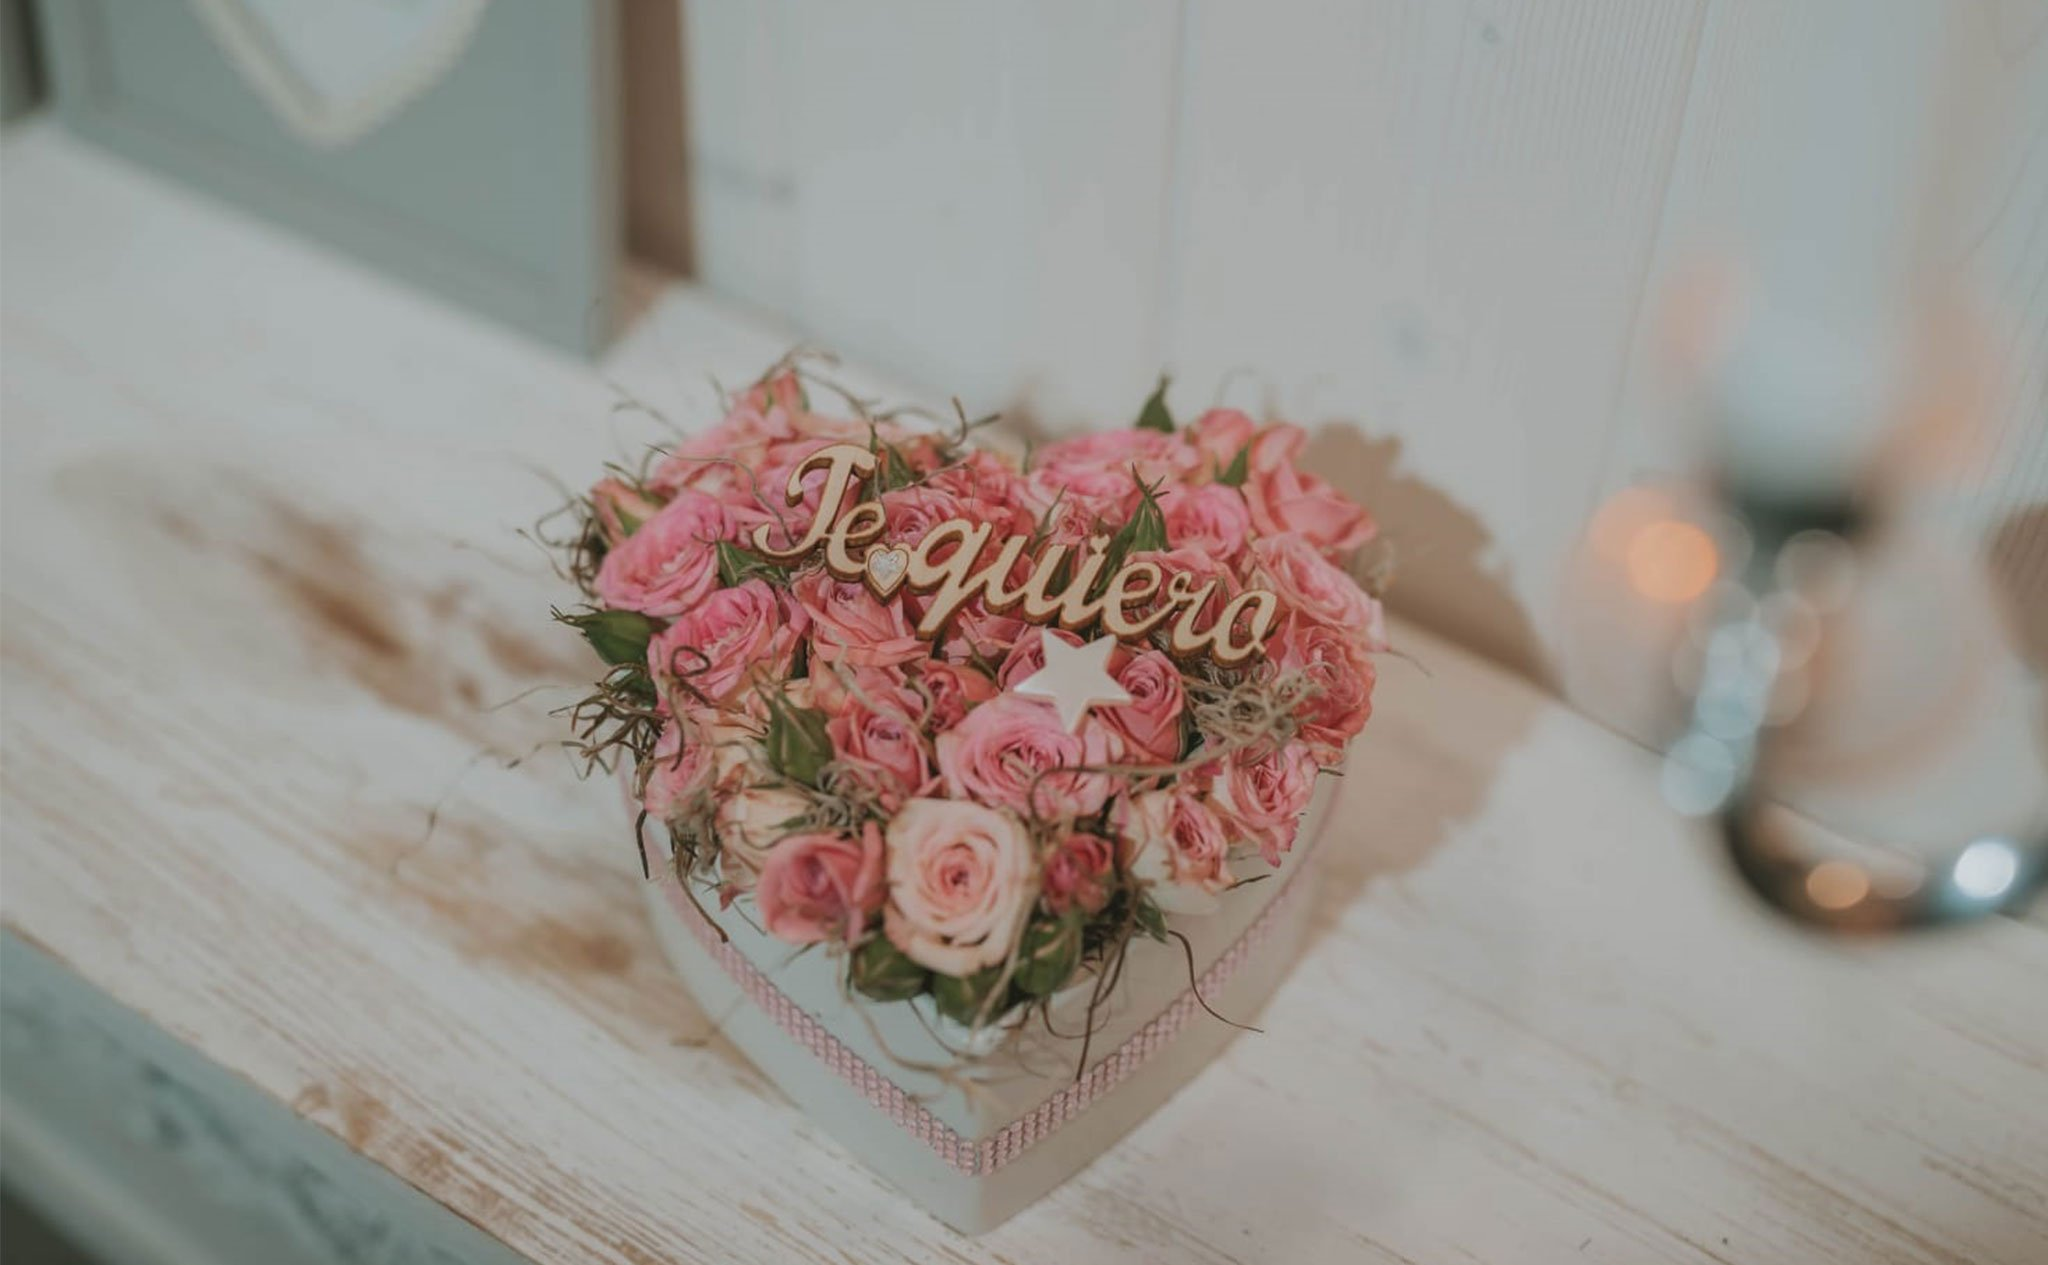 Details for Valentine's Day in Weddings and Flowers